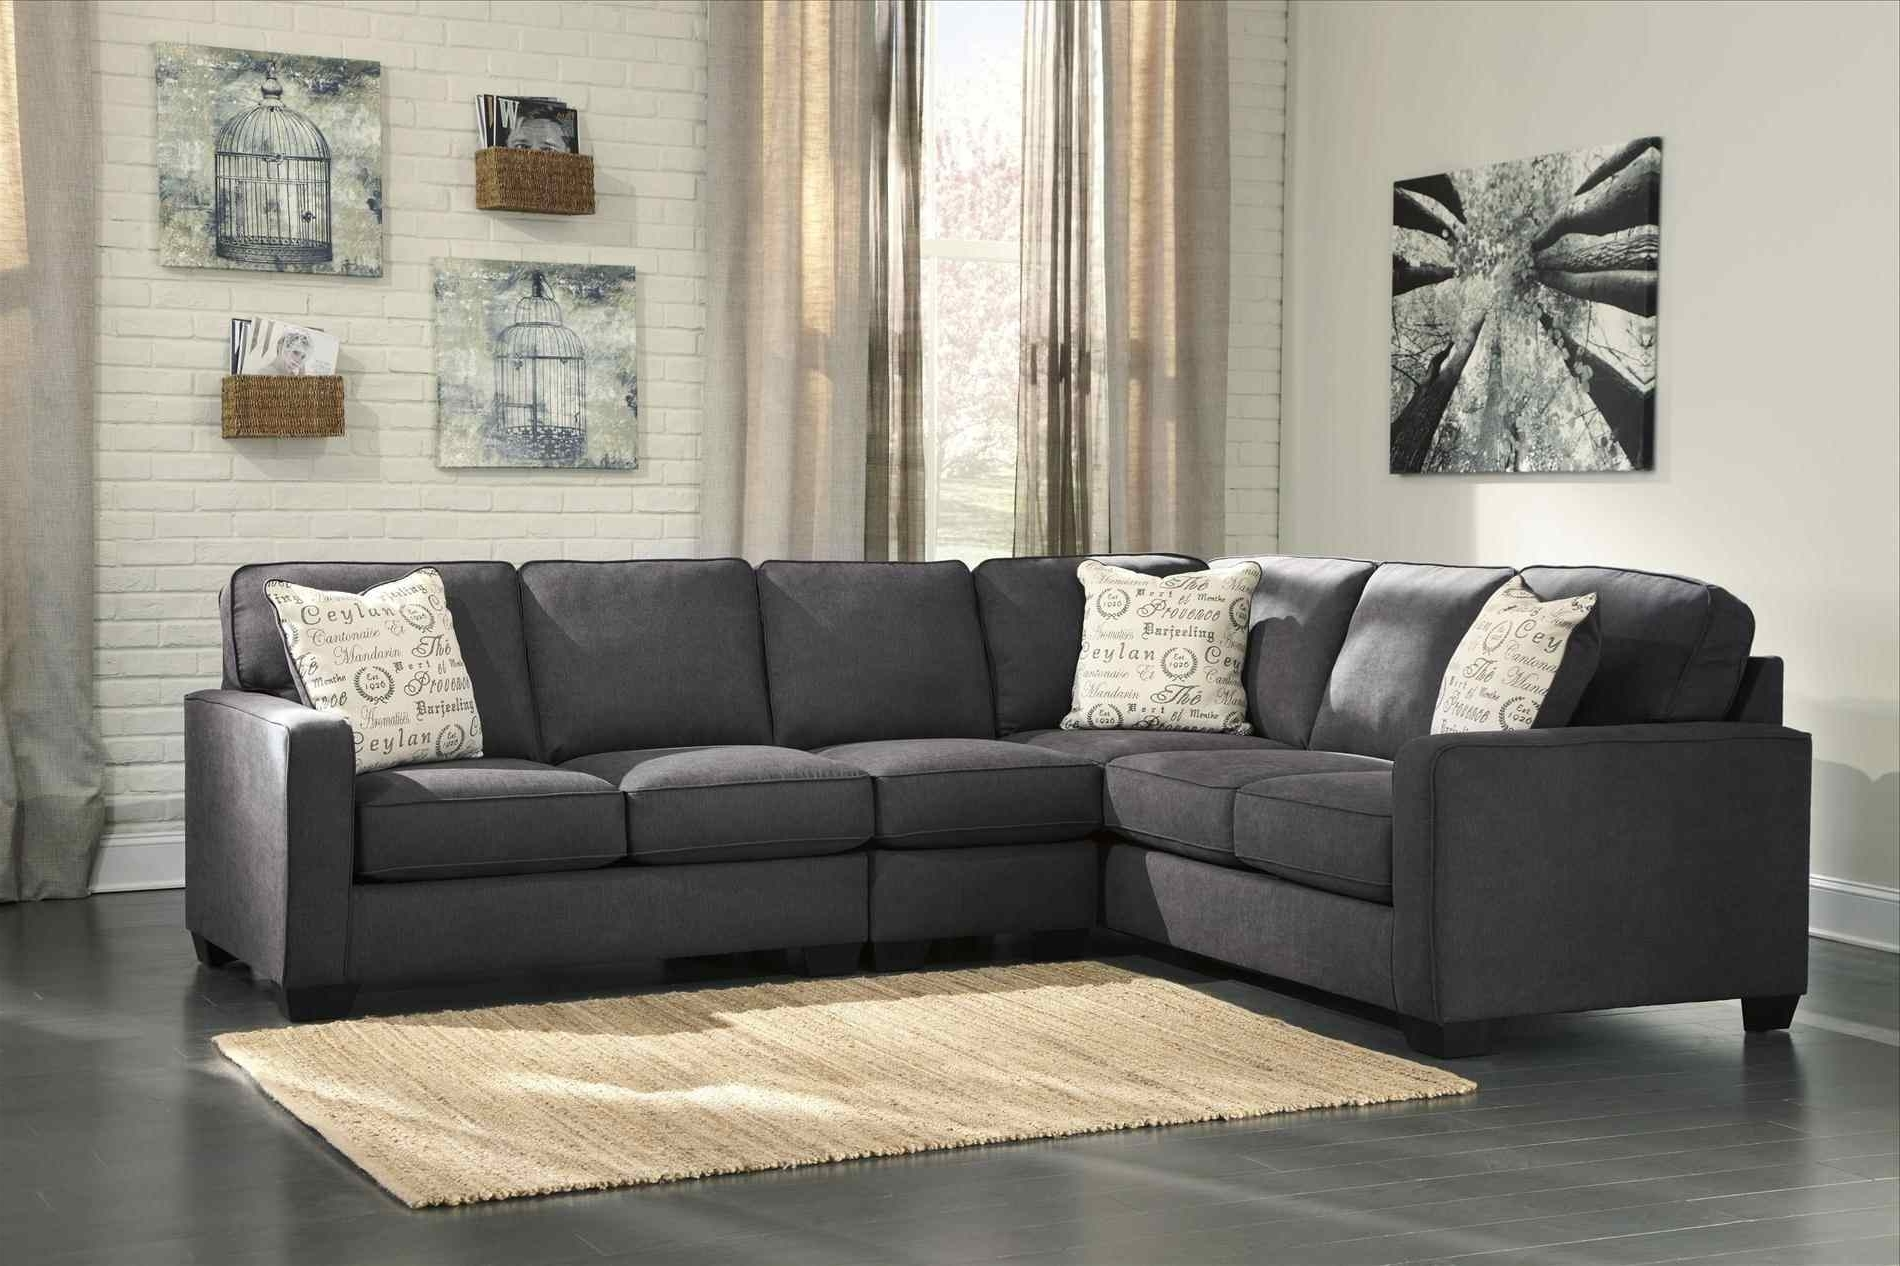 Well Known Simmons Chaise Sofas With Regard To Sofa : Simmons Chaise Gray Sectional Sofa With Cheap S Under (View 20 of 20)